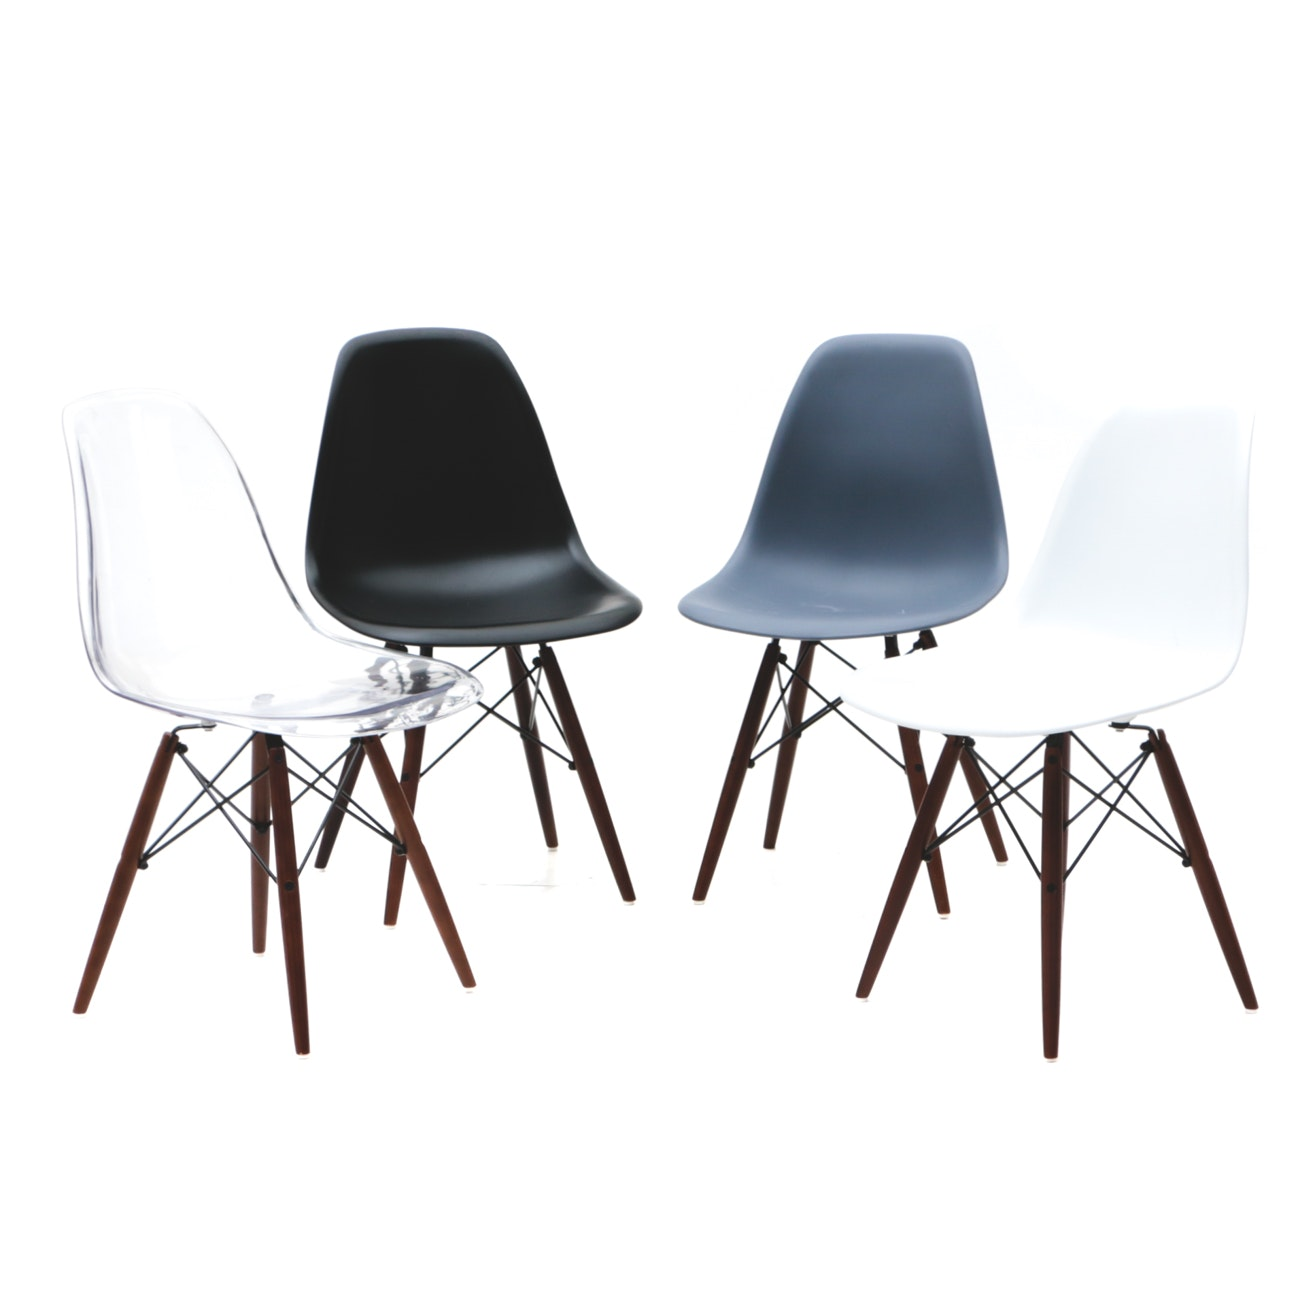 Collection of Eames Style Eiffel Chairs